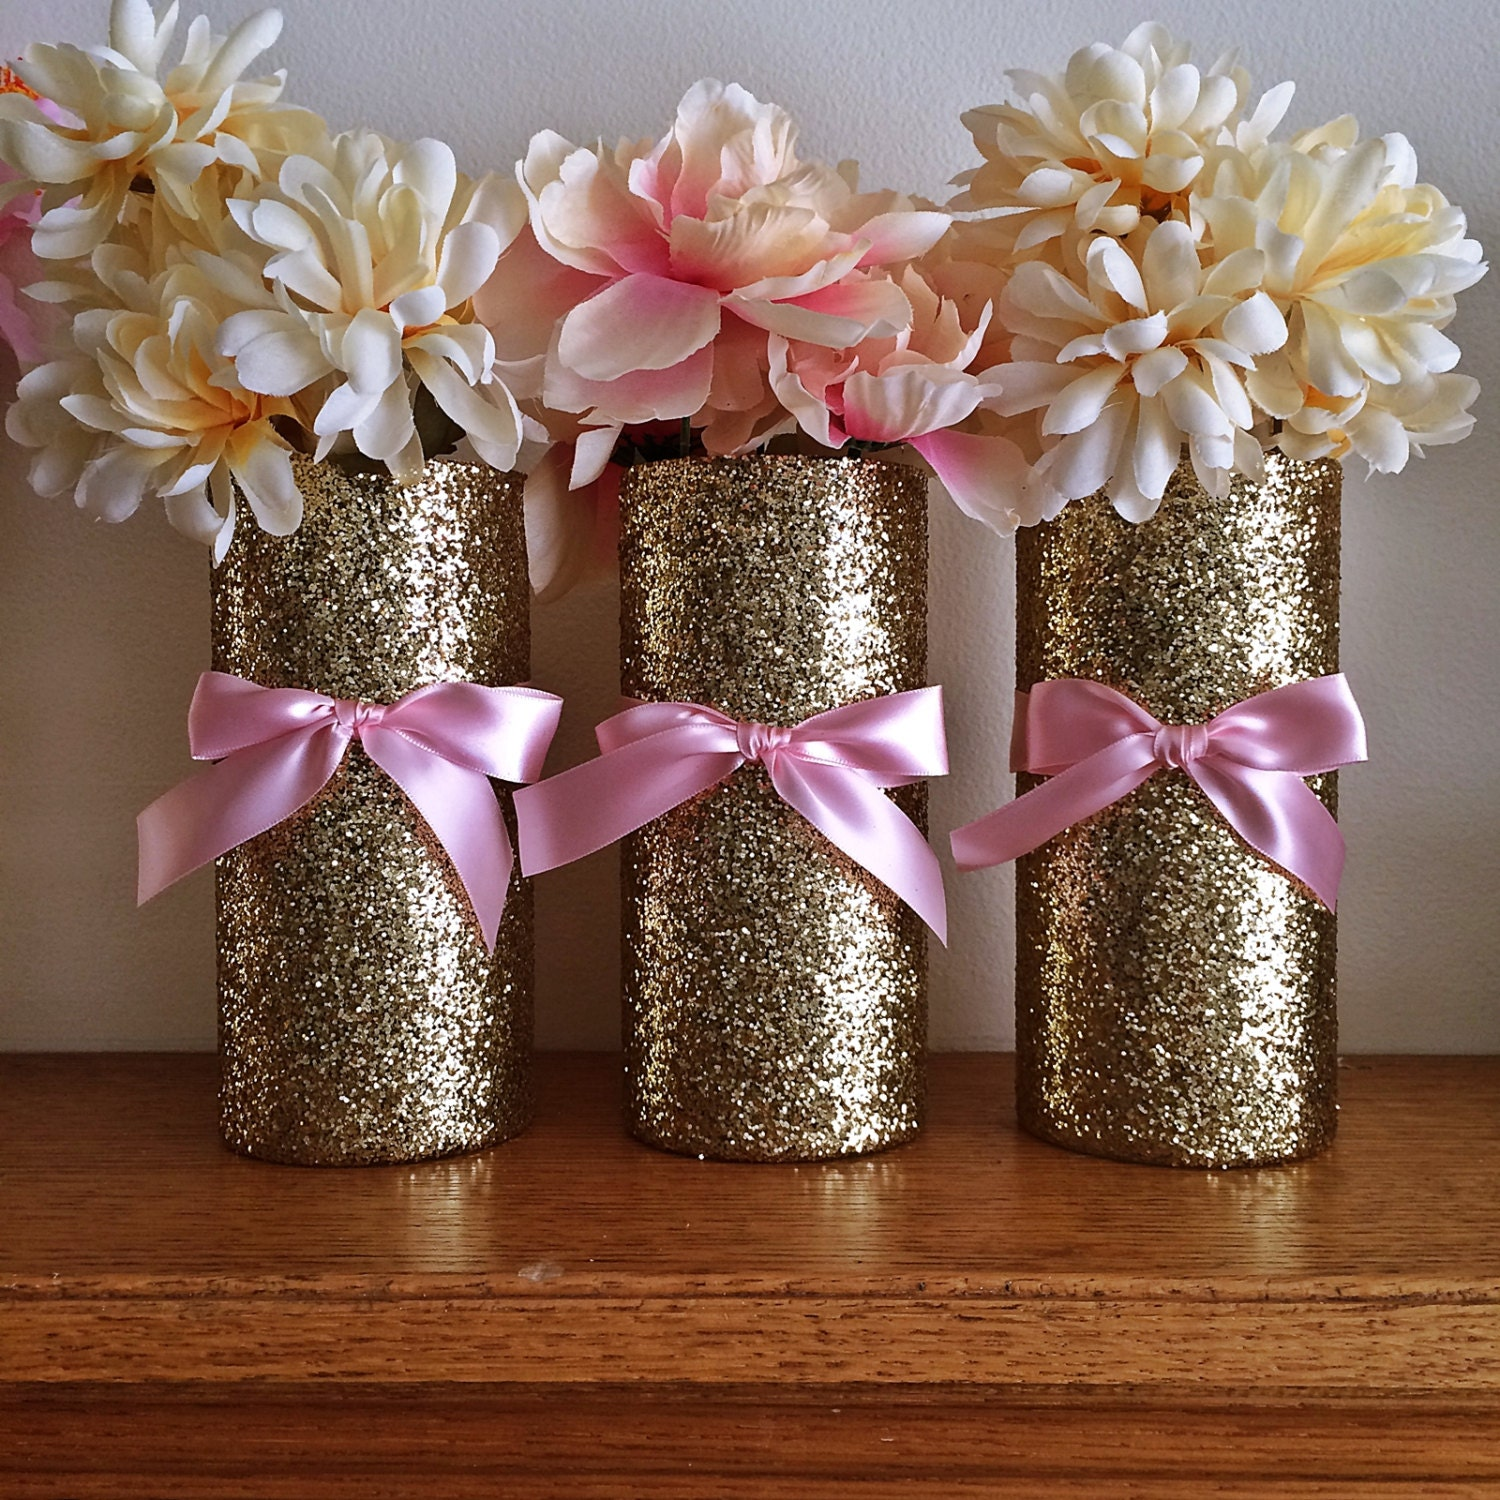 Gold Wedding Centerpiece Decorations: 3 Gold Vases Wedding Pink And Gold Baby Shower